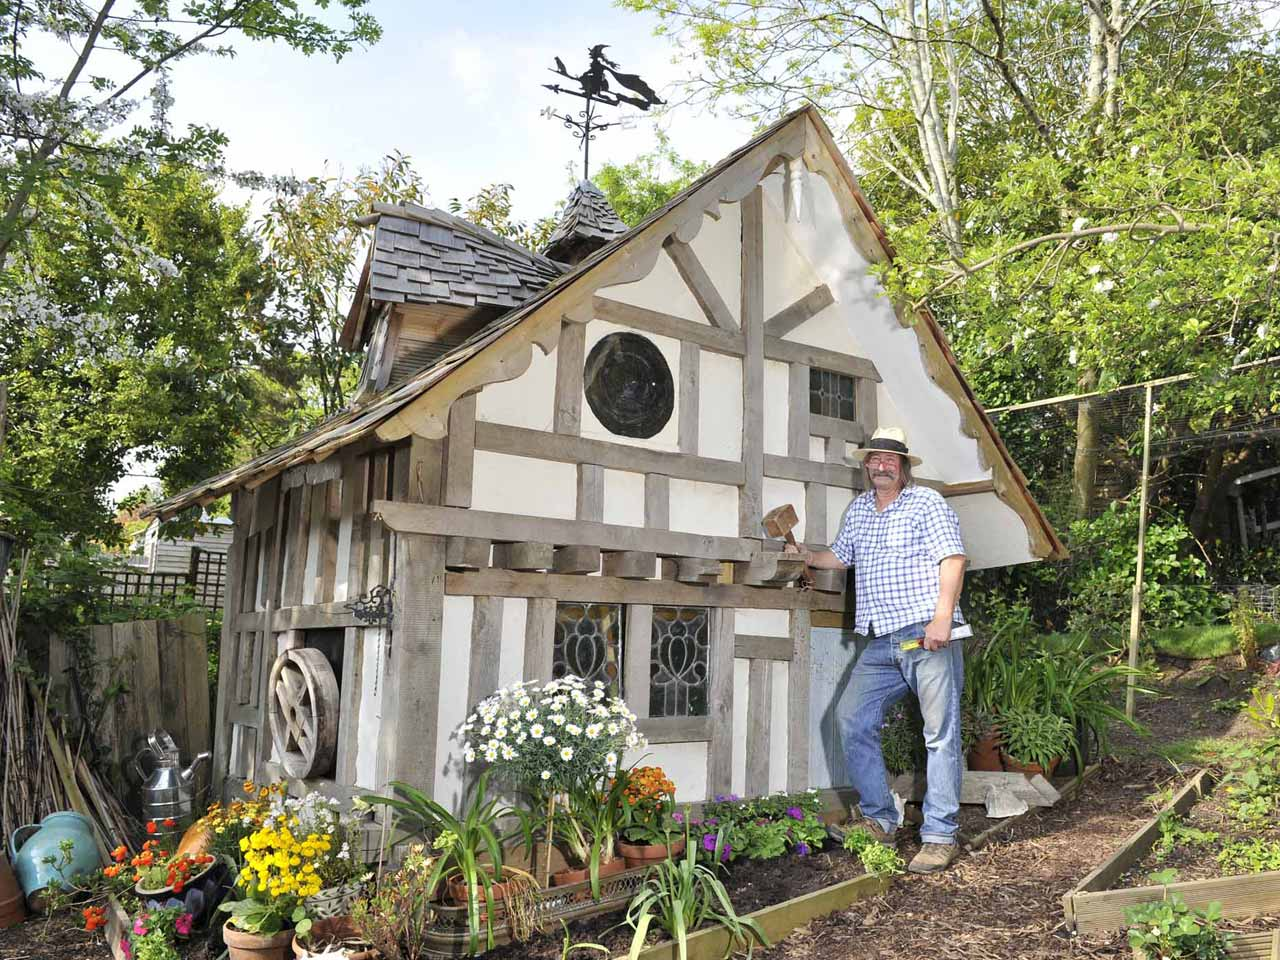 Old Garden Shed – owned by Brian in Hastings